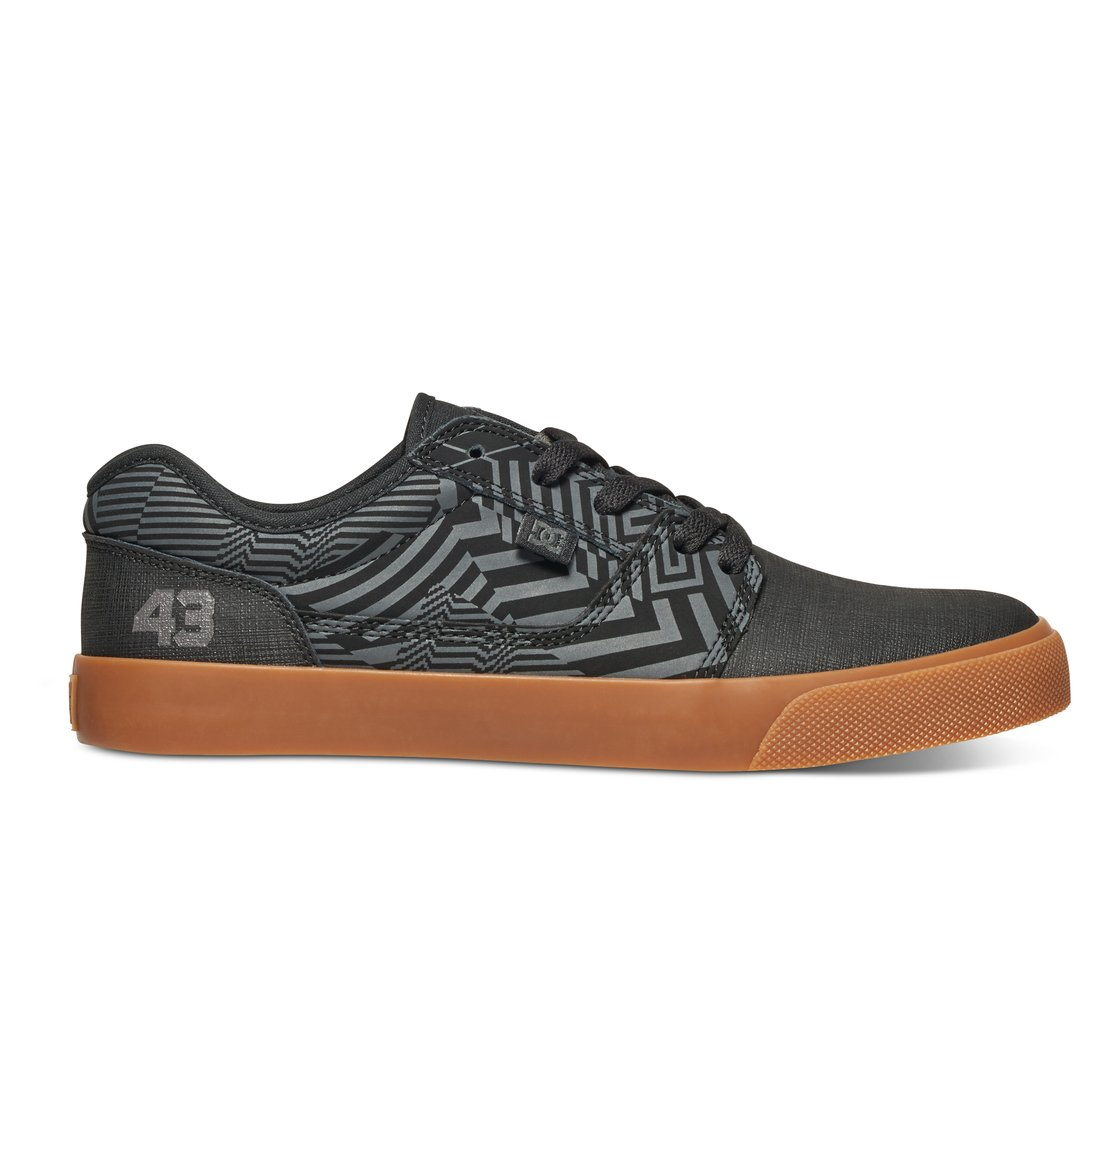 uk availability 520ae 56b6a Tonik KB - Schuhe ADYS300129 | DC Shoes